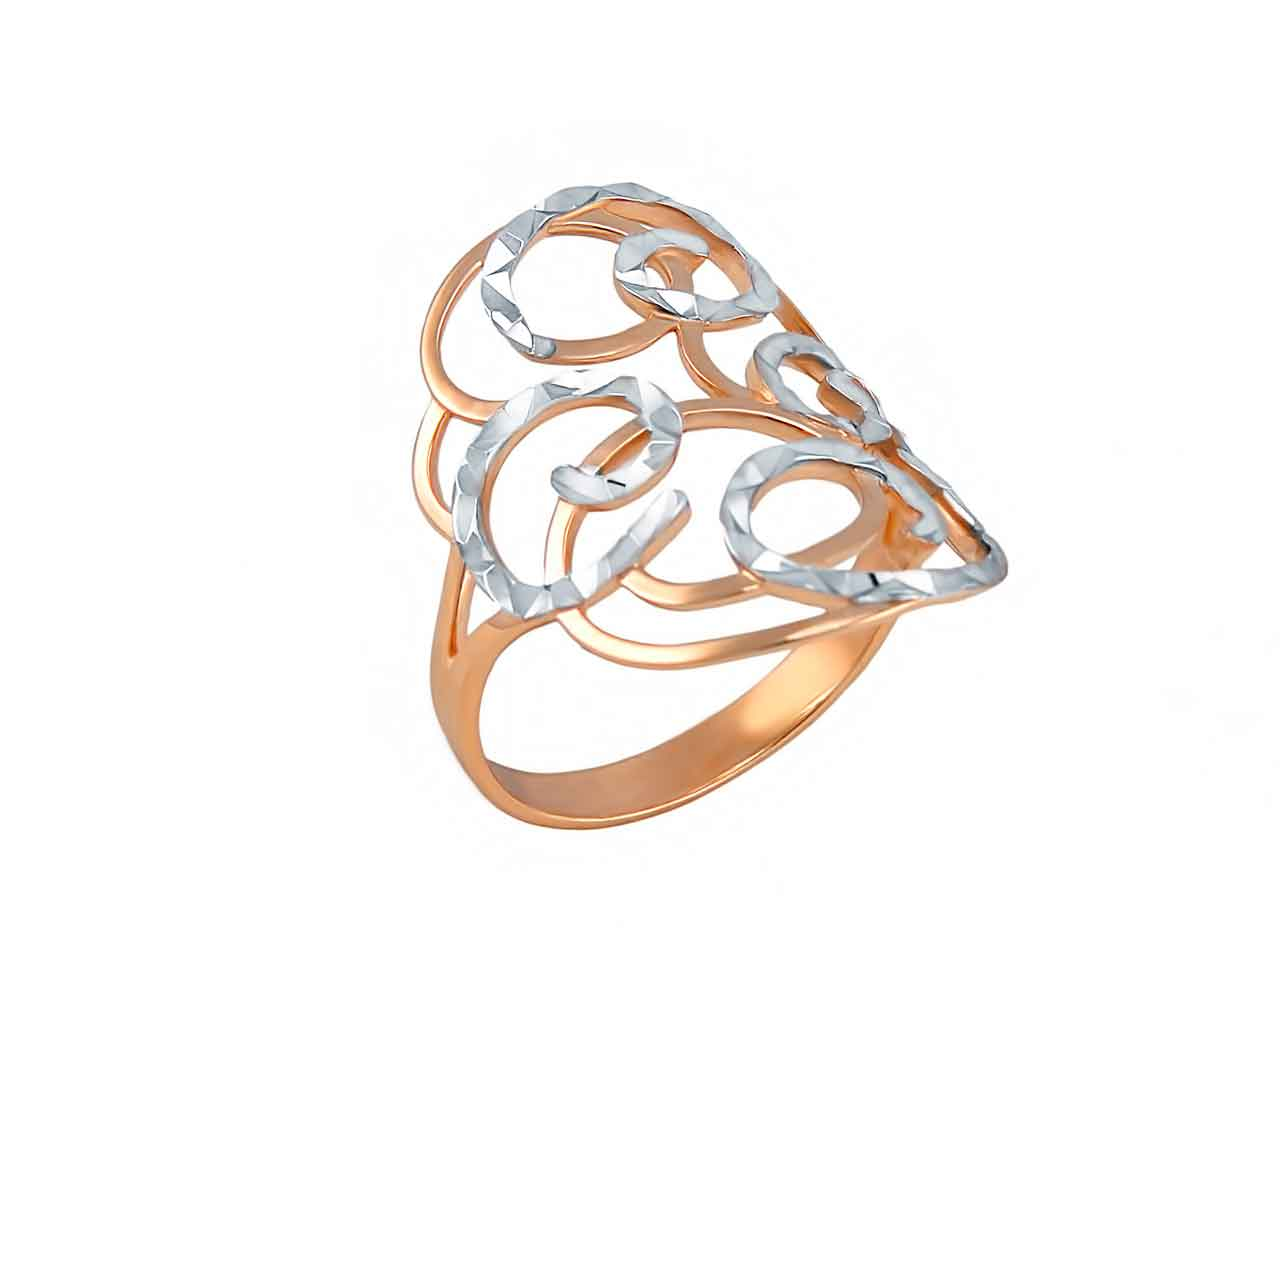 Full-finger gold ring 1